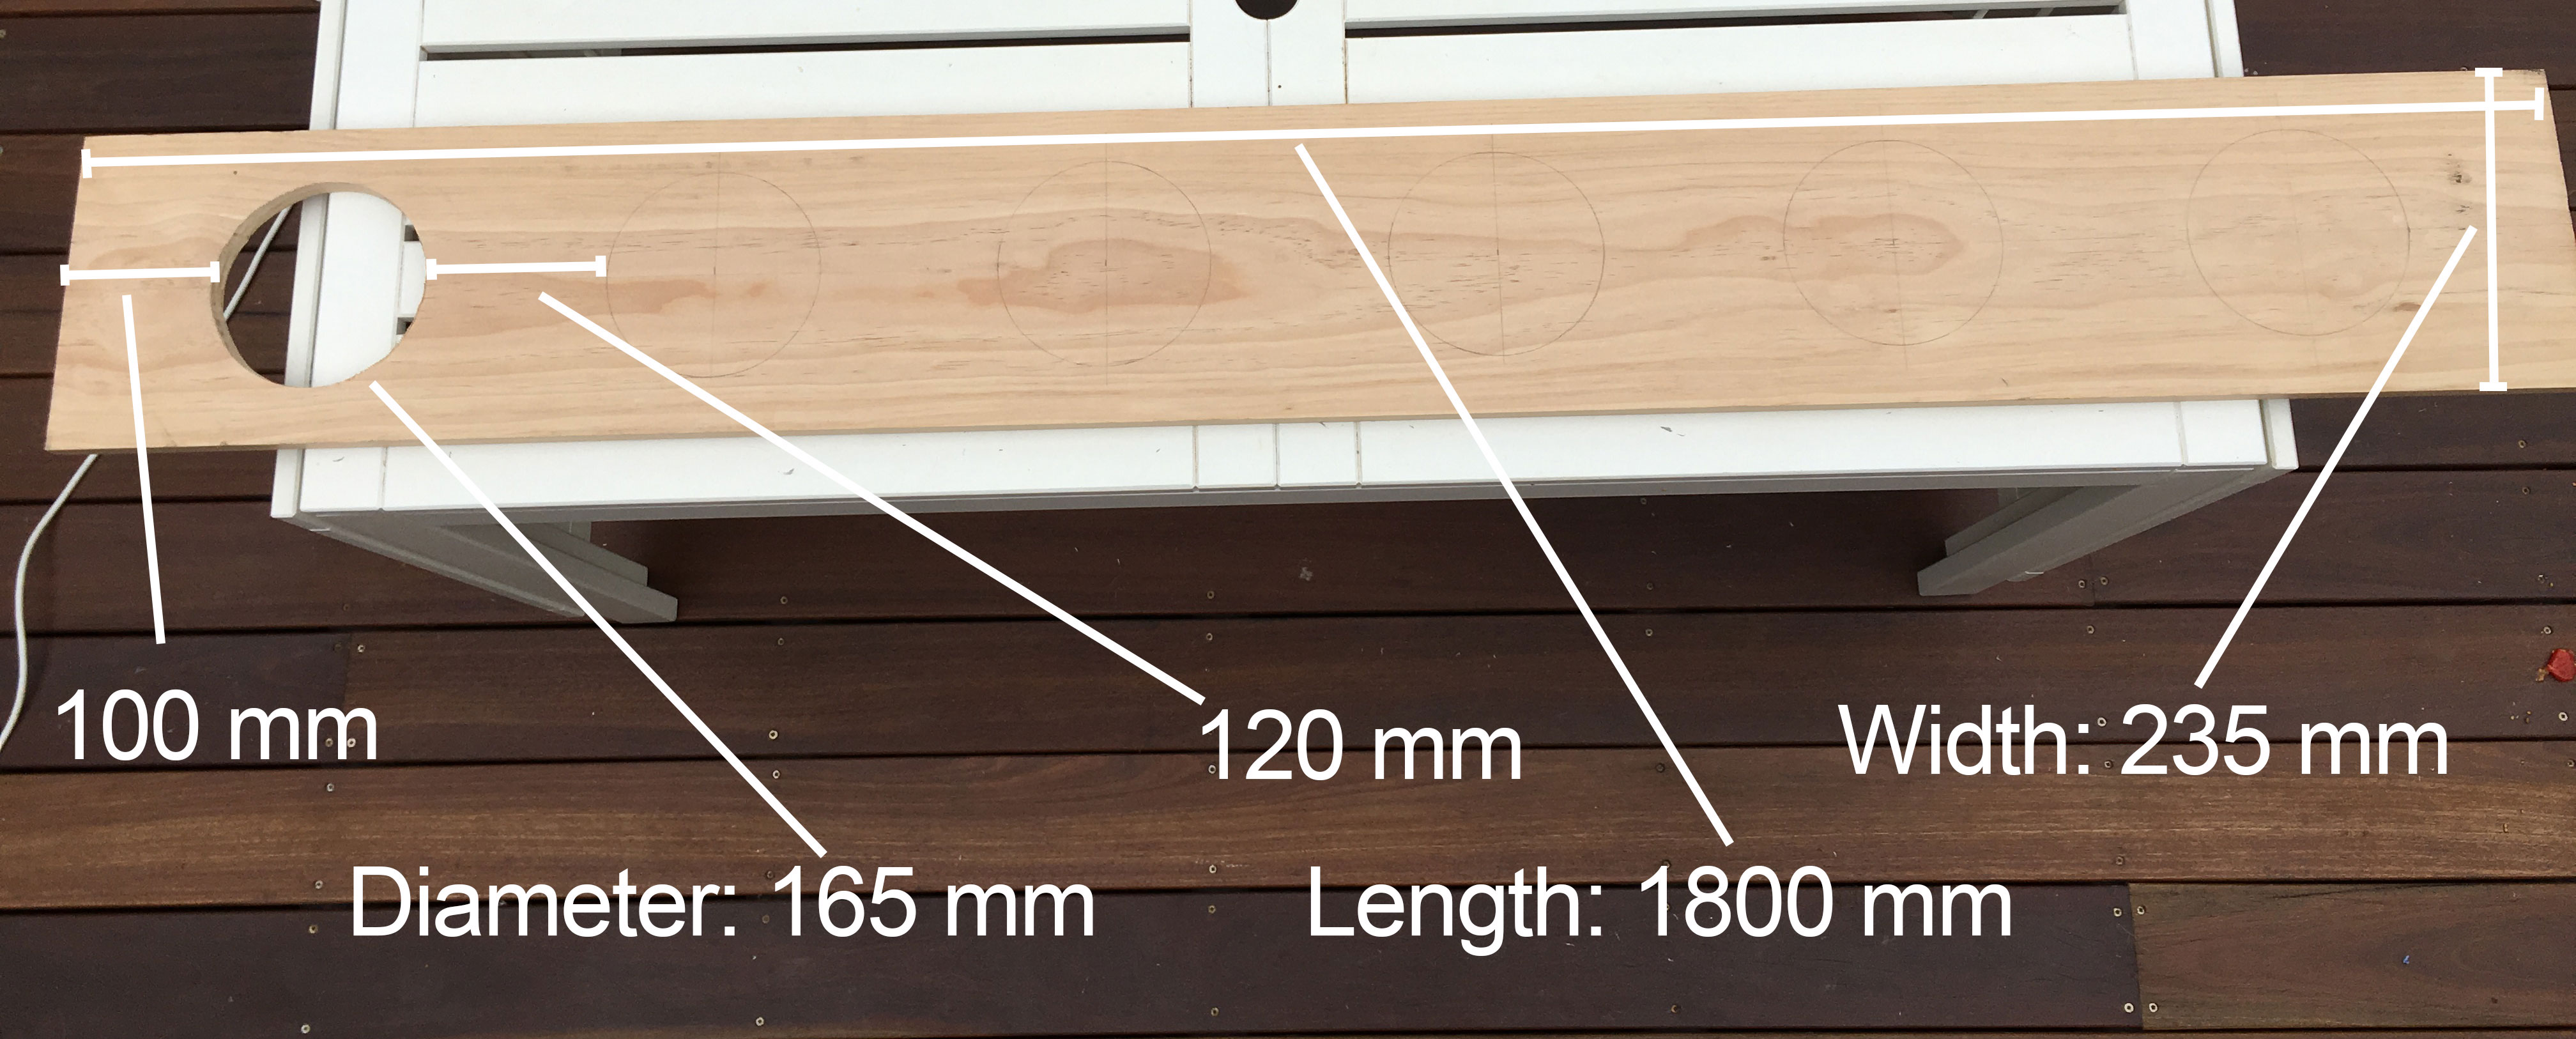 Shelf-with-measurements_web.jpg